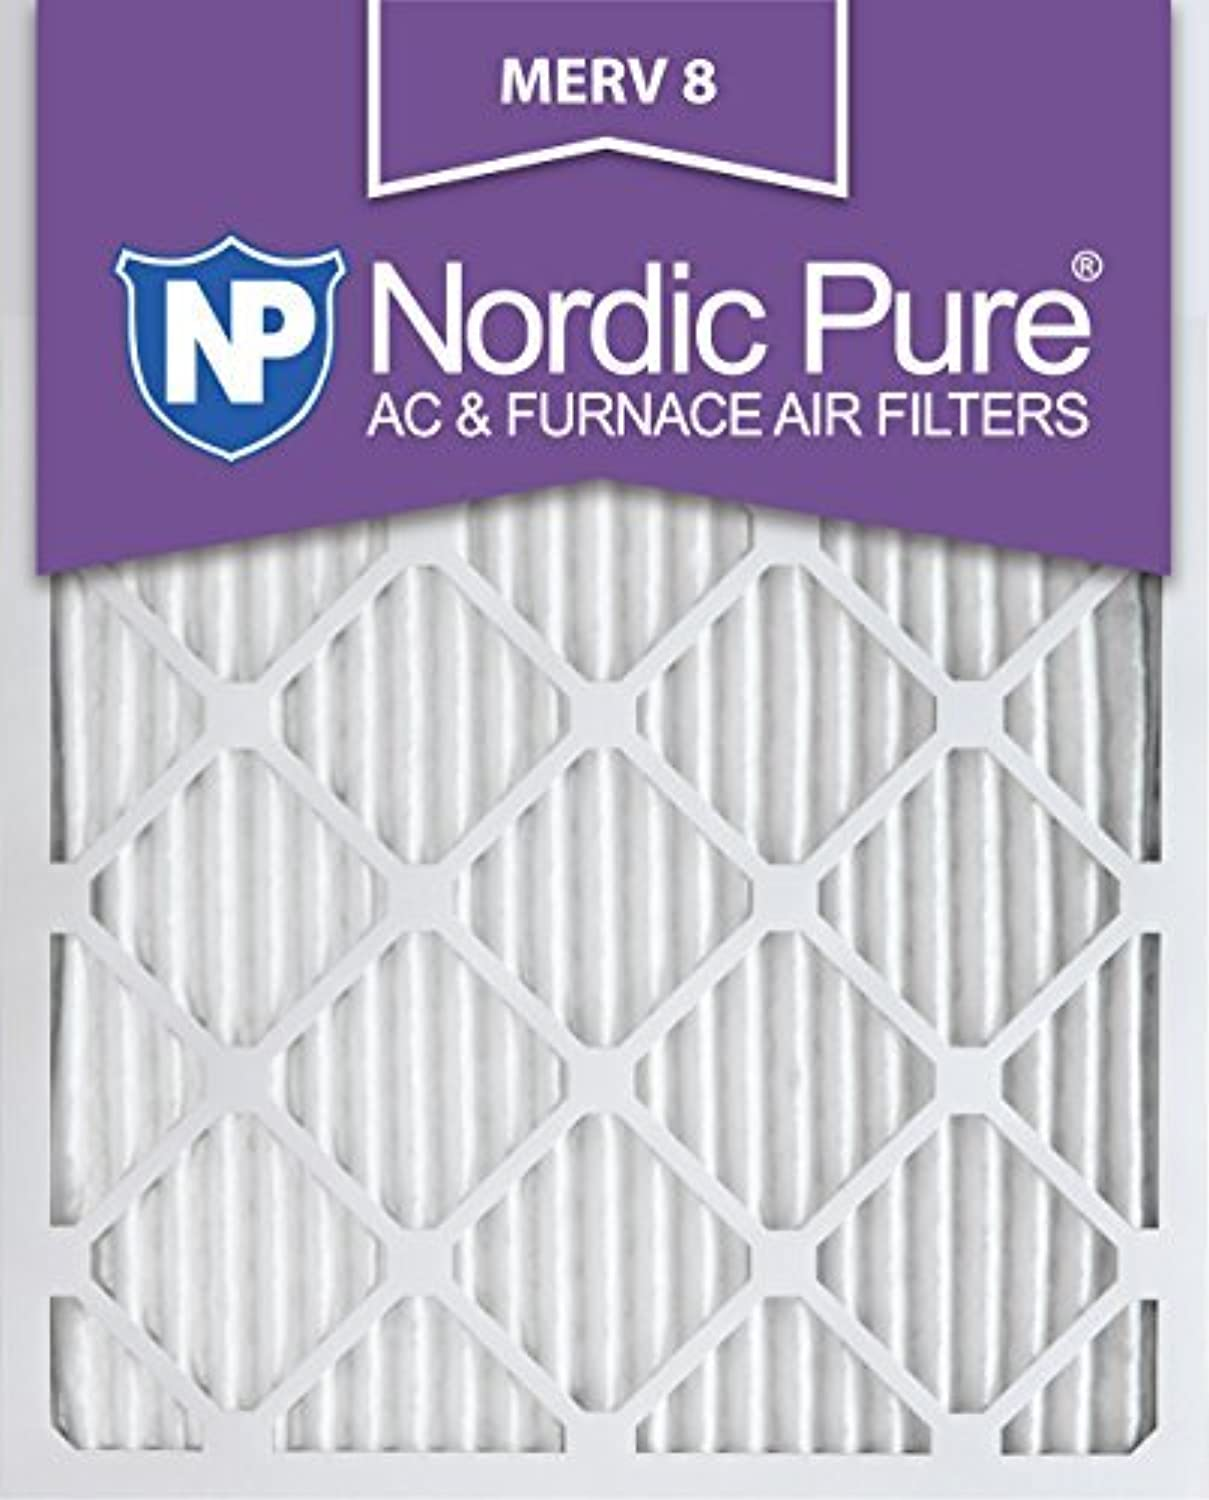 Nordic Pure 16x25x1M8-2 MERV 8 AC Furnace Filter 16x25x1 Pleated Merv 8 AC Furnace Filters Qty 2 [並行輸入品]